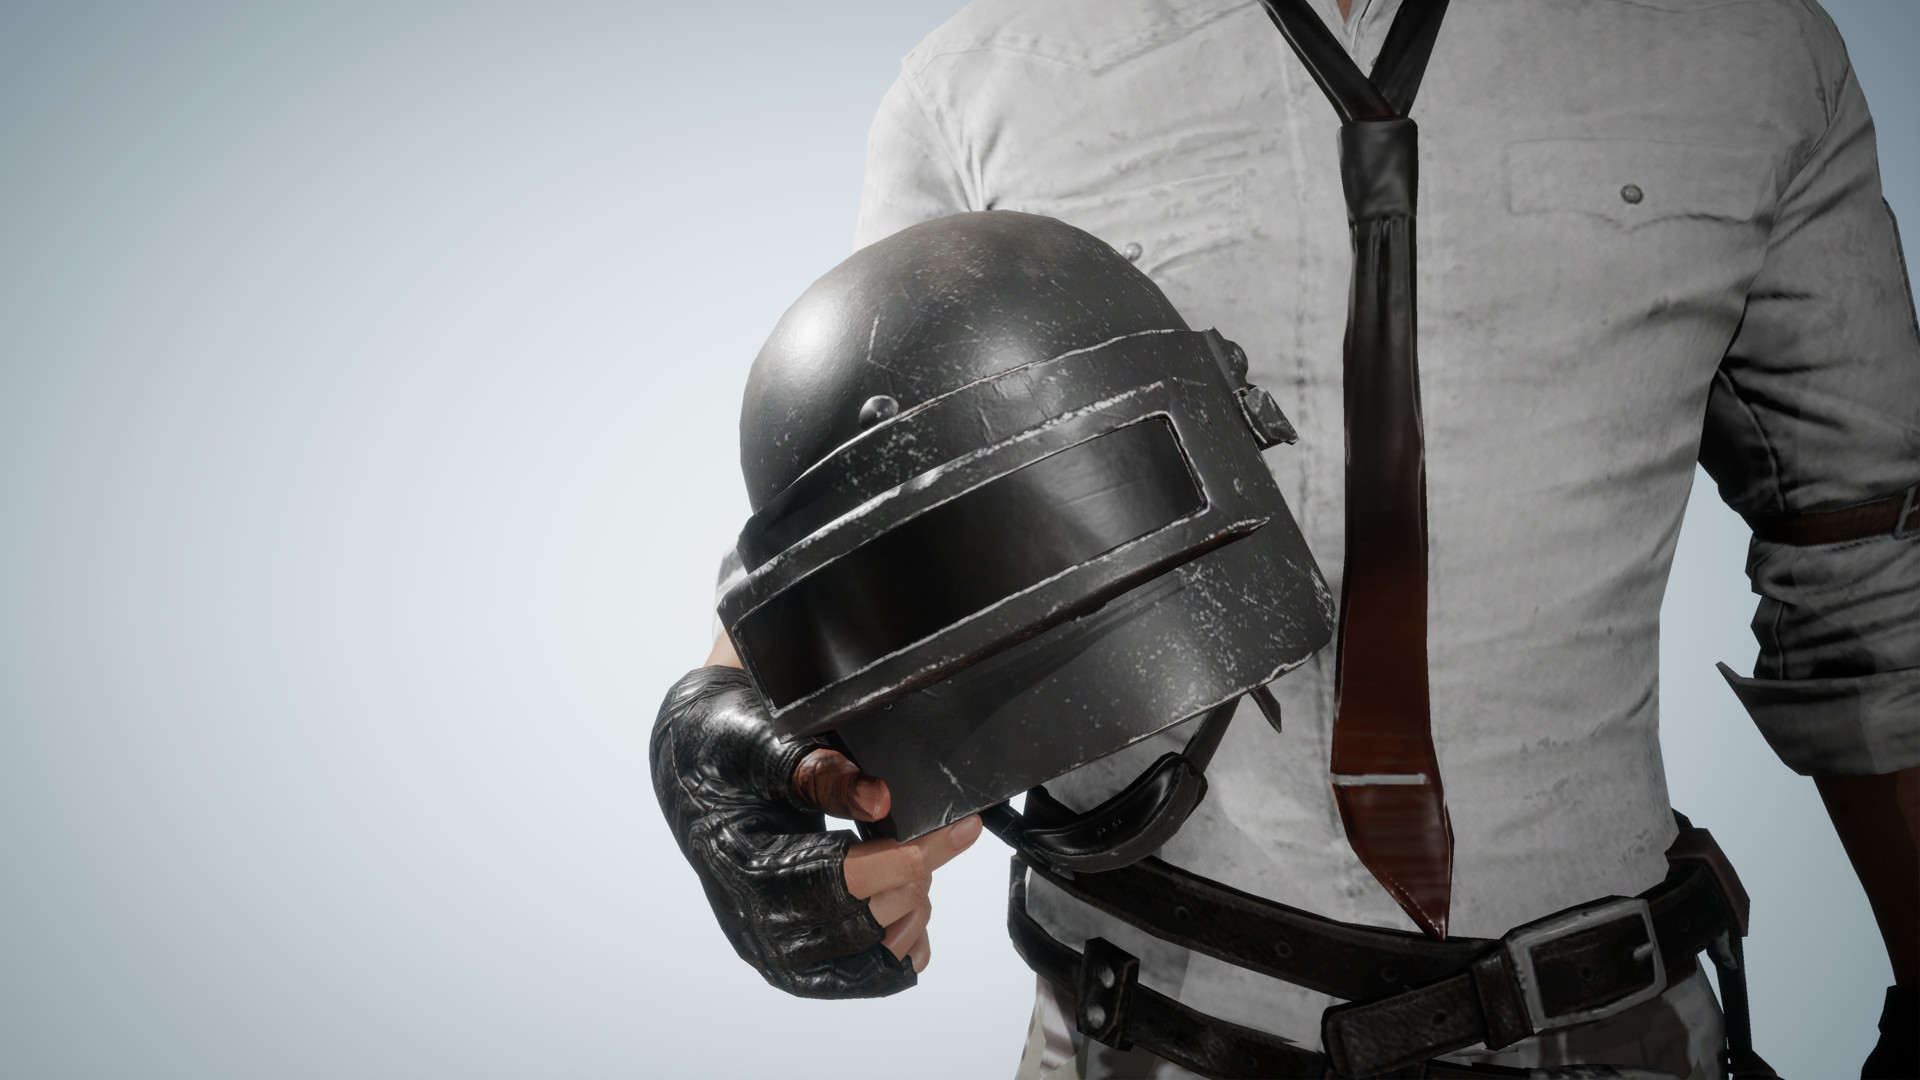 Pubg Mobile Helmet Wallpaper Pubg Pubgwallpapers: Владимир Аплеев